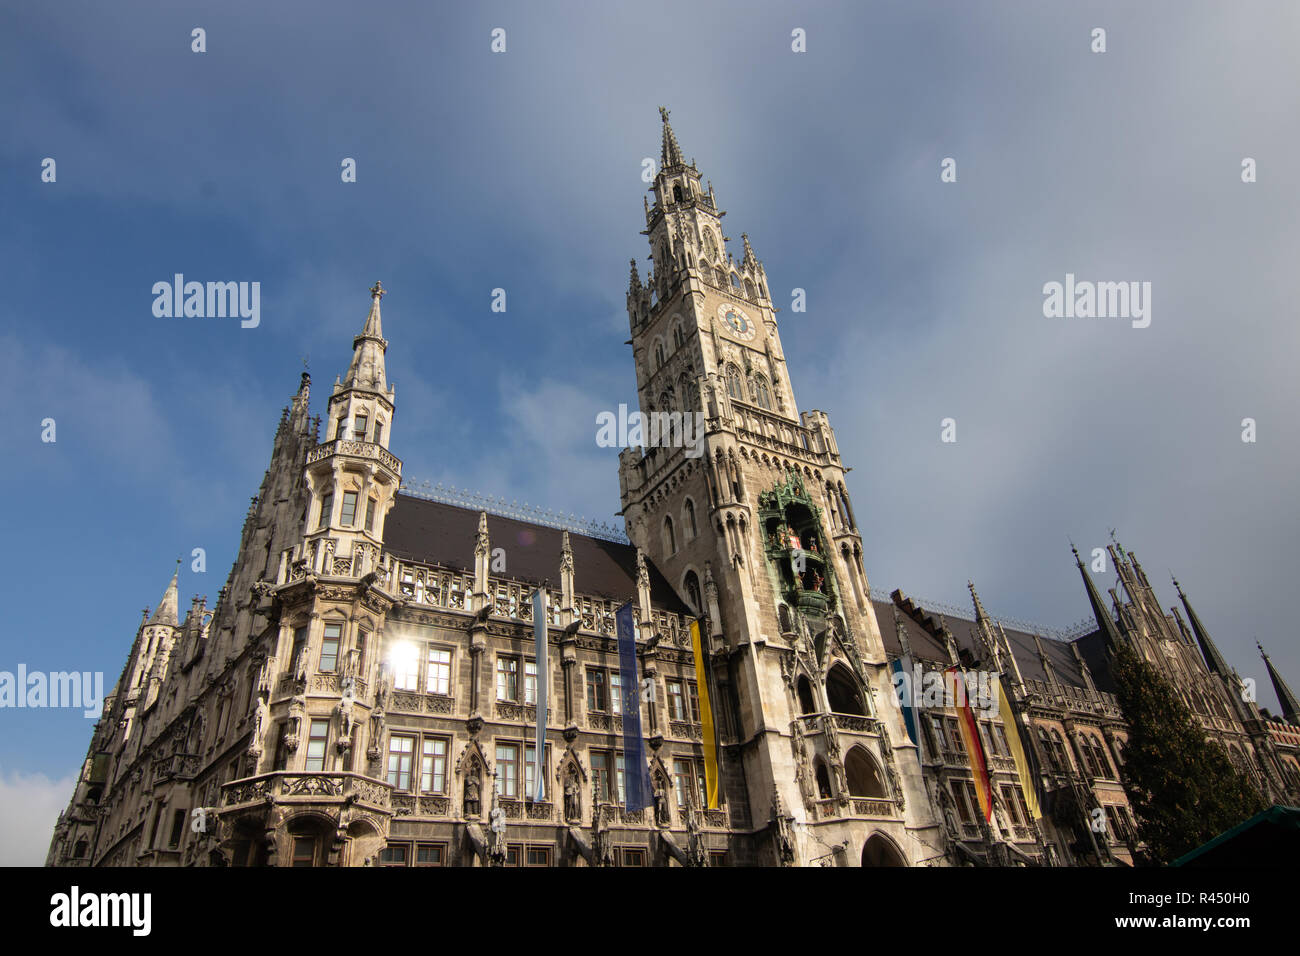 Rathaus in München - Stock Image